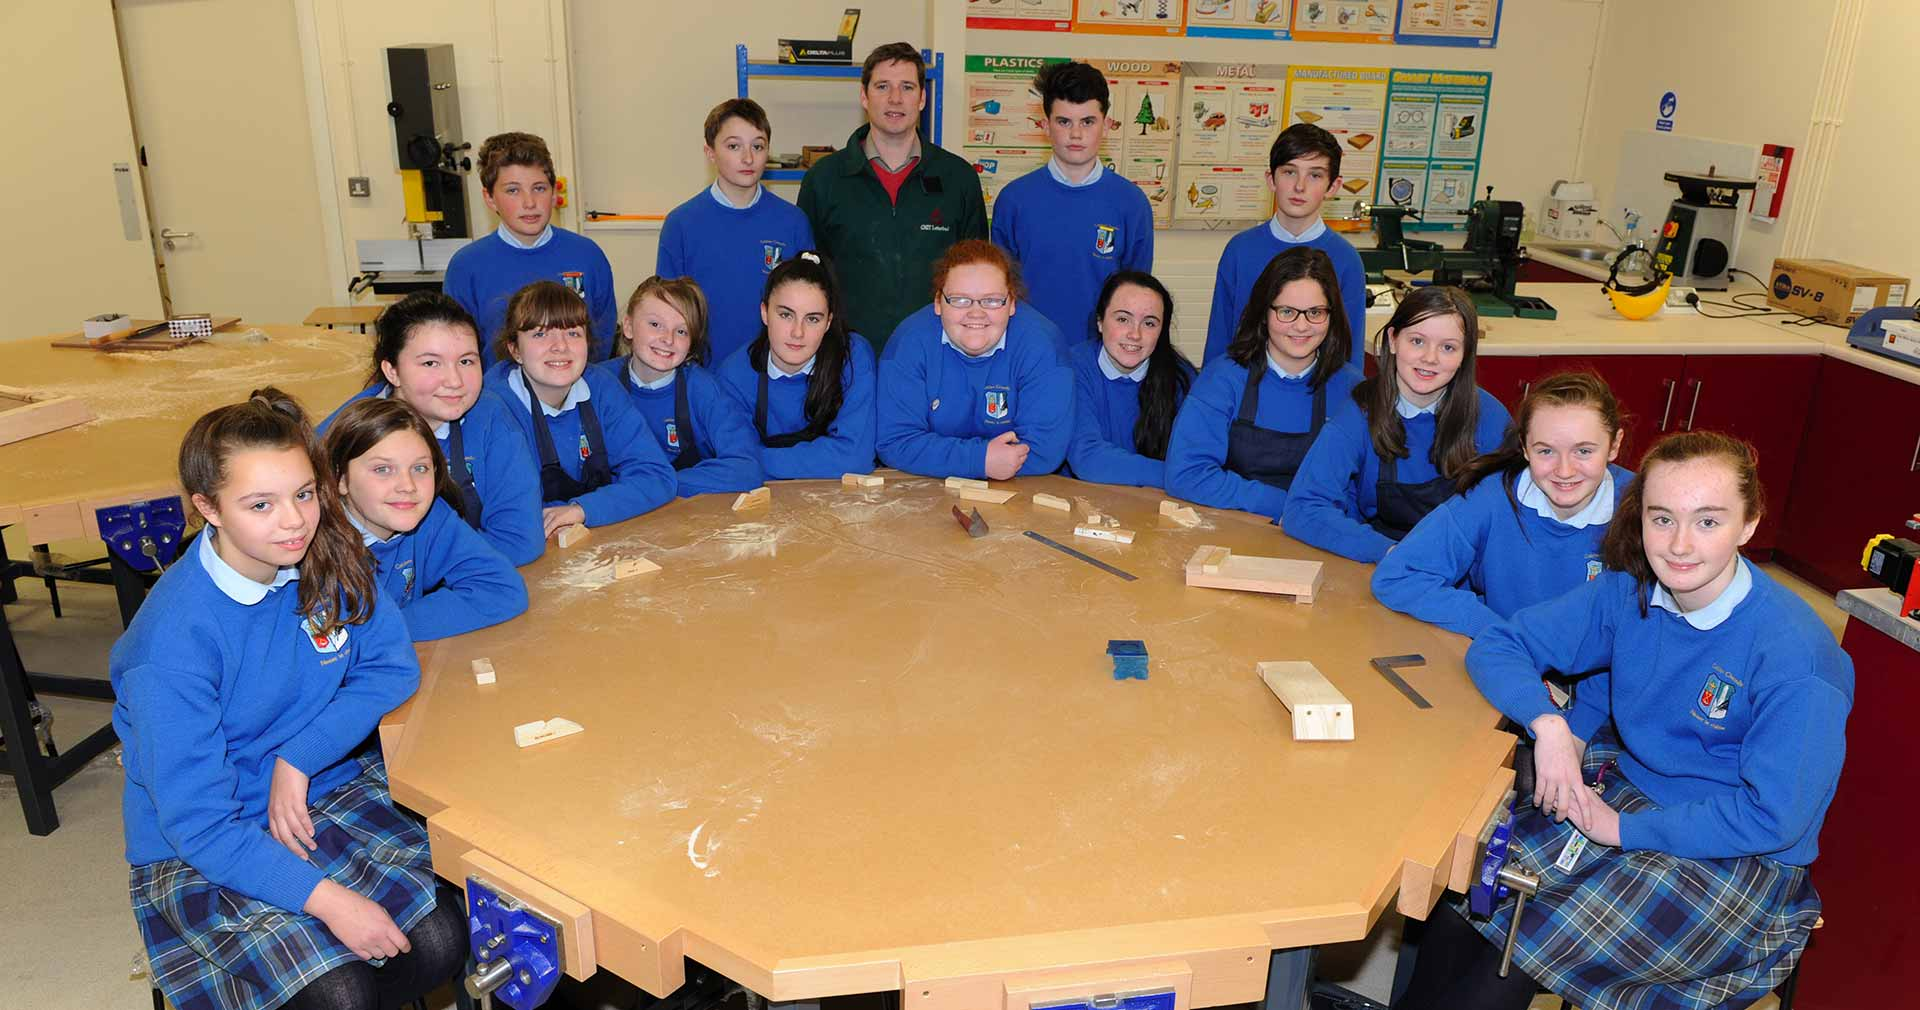 Colaiste Chiarain teacher and students